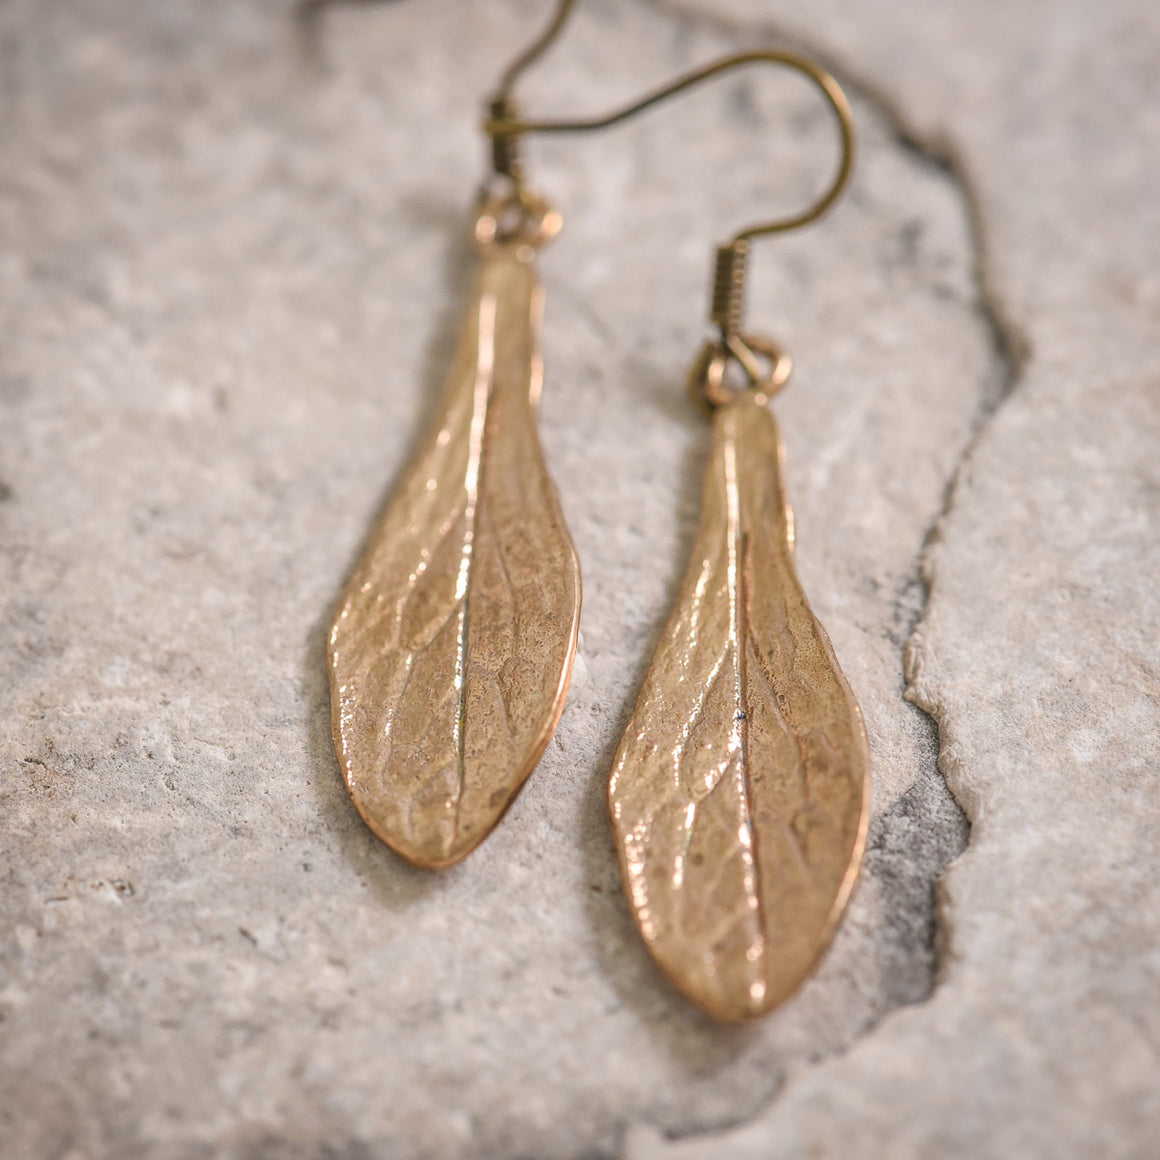 Maple Key Earrings in Bronze